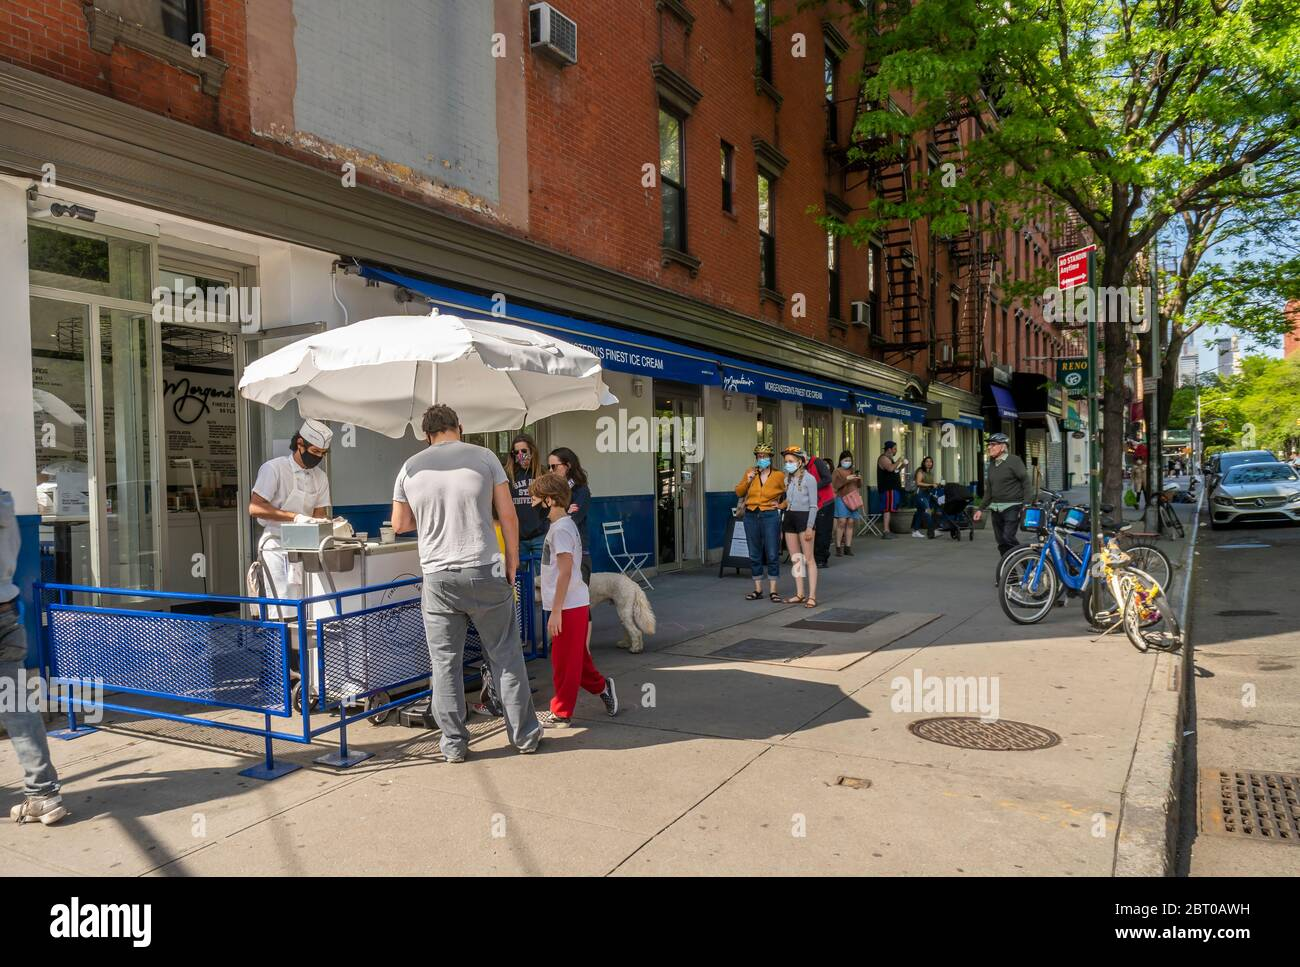 Morgenstern's Ice Cream stand, following social distance guidelines, in Greenwich Village in New York on Sunday, May 17, 2020. (© Richard B. Levine) Stock Photo